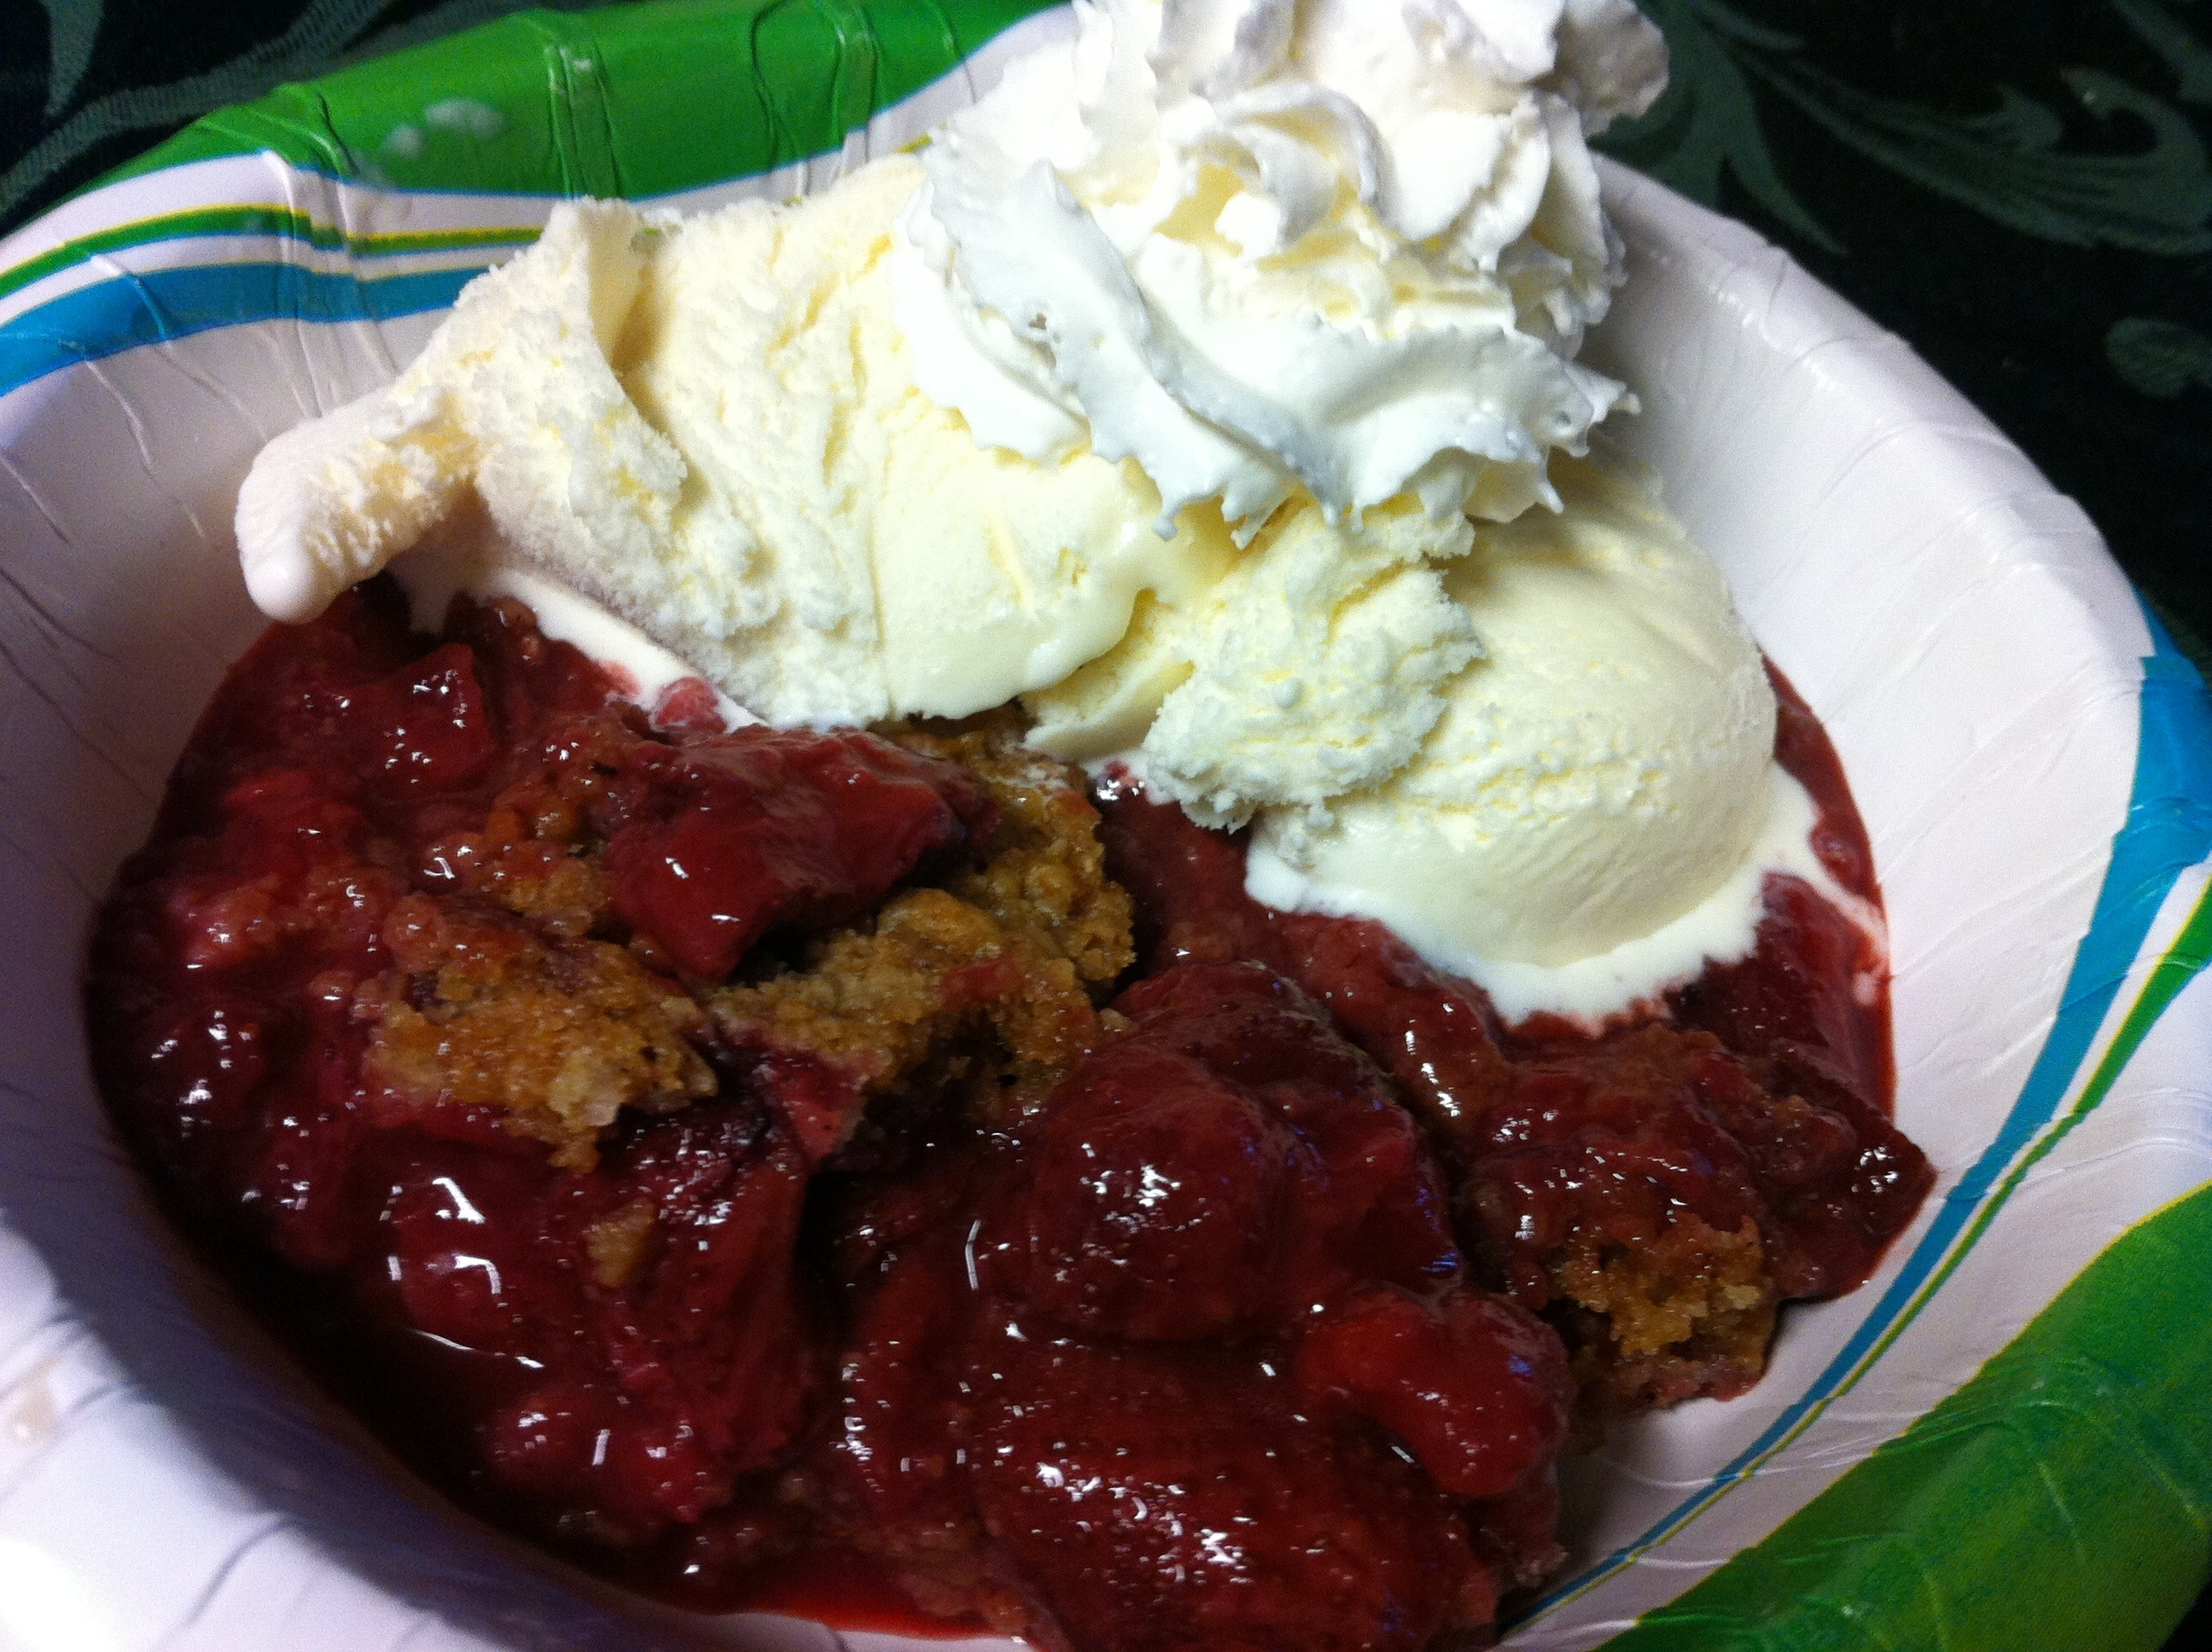 strawberry cobbler with ice cream